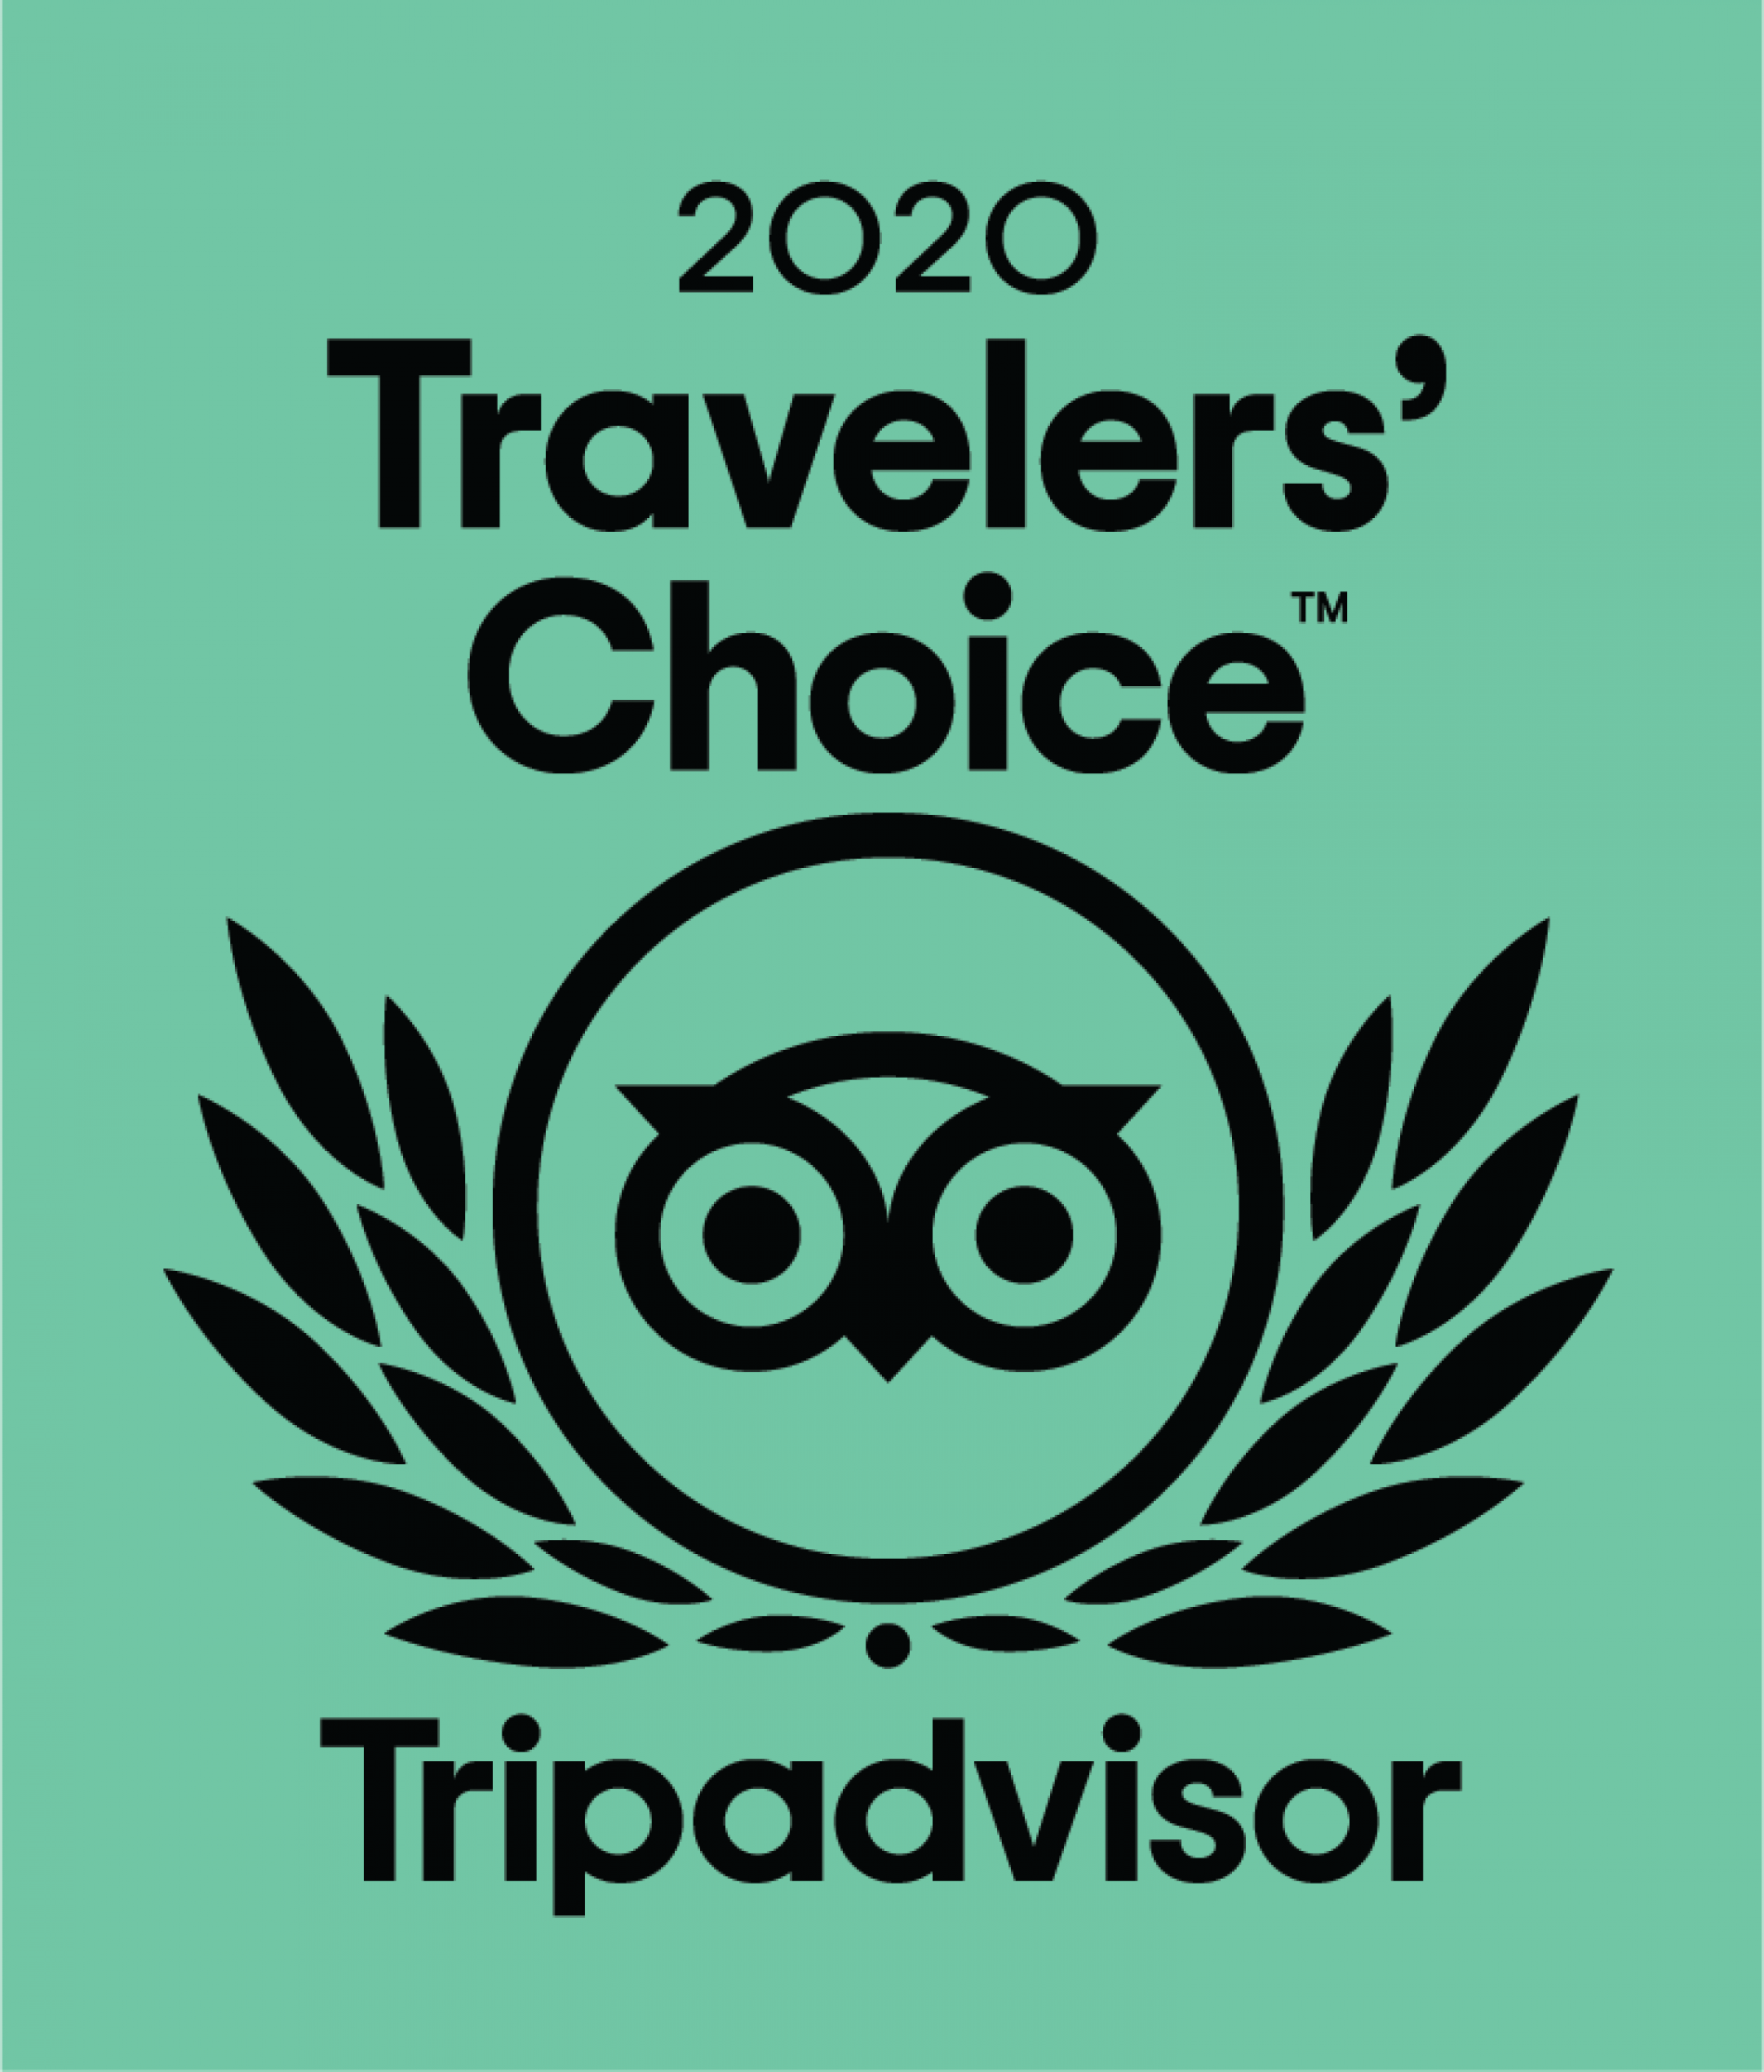 Tripadvisor: Traveler's Choice